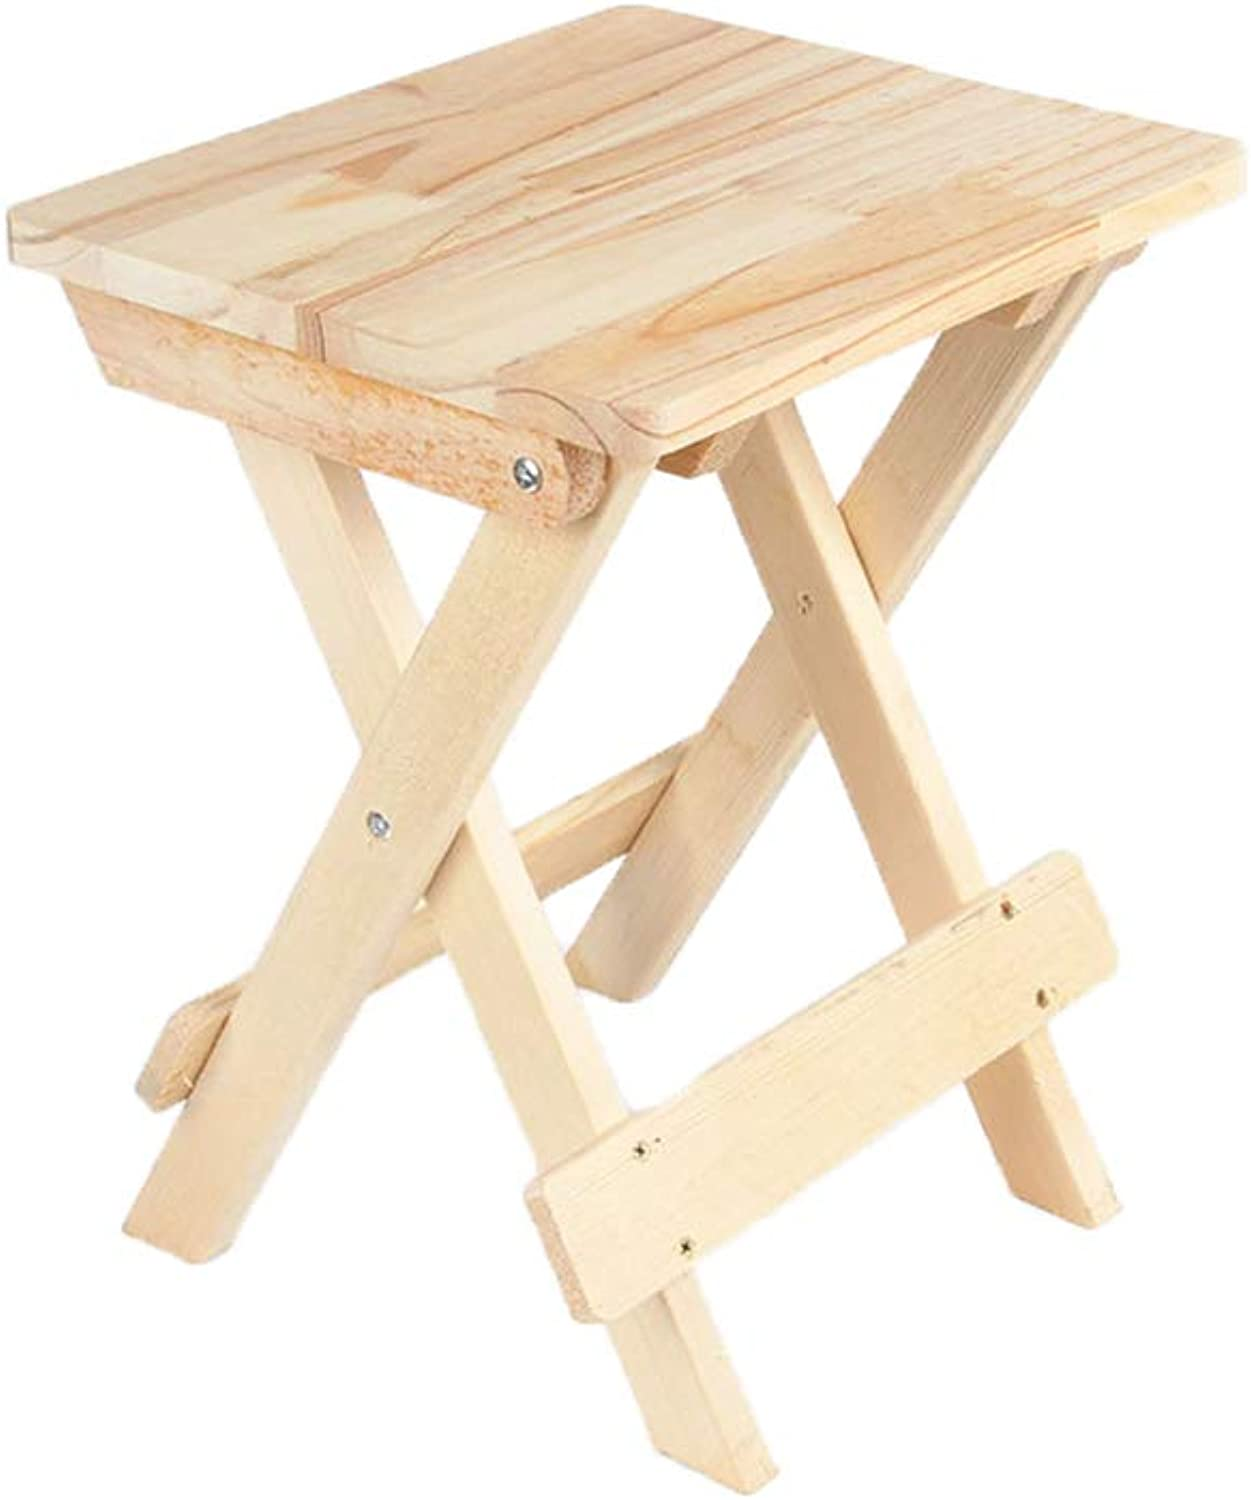 YQQ Educational Equipment Wooden Folding Stool Solid Wood Square Stool Sketch Stool Square Stool Sketch Chair Painting Art